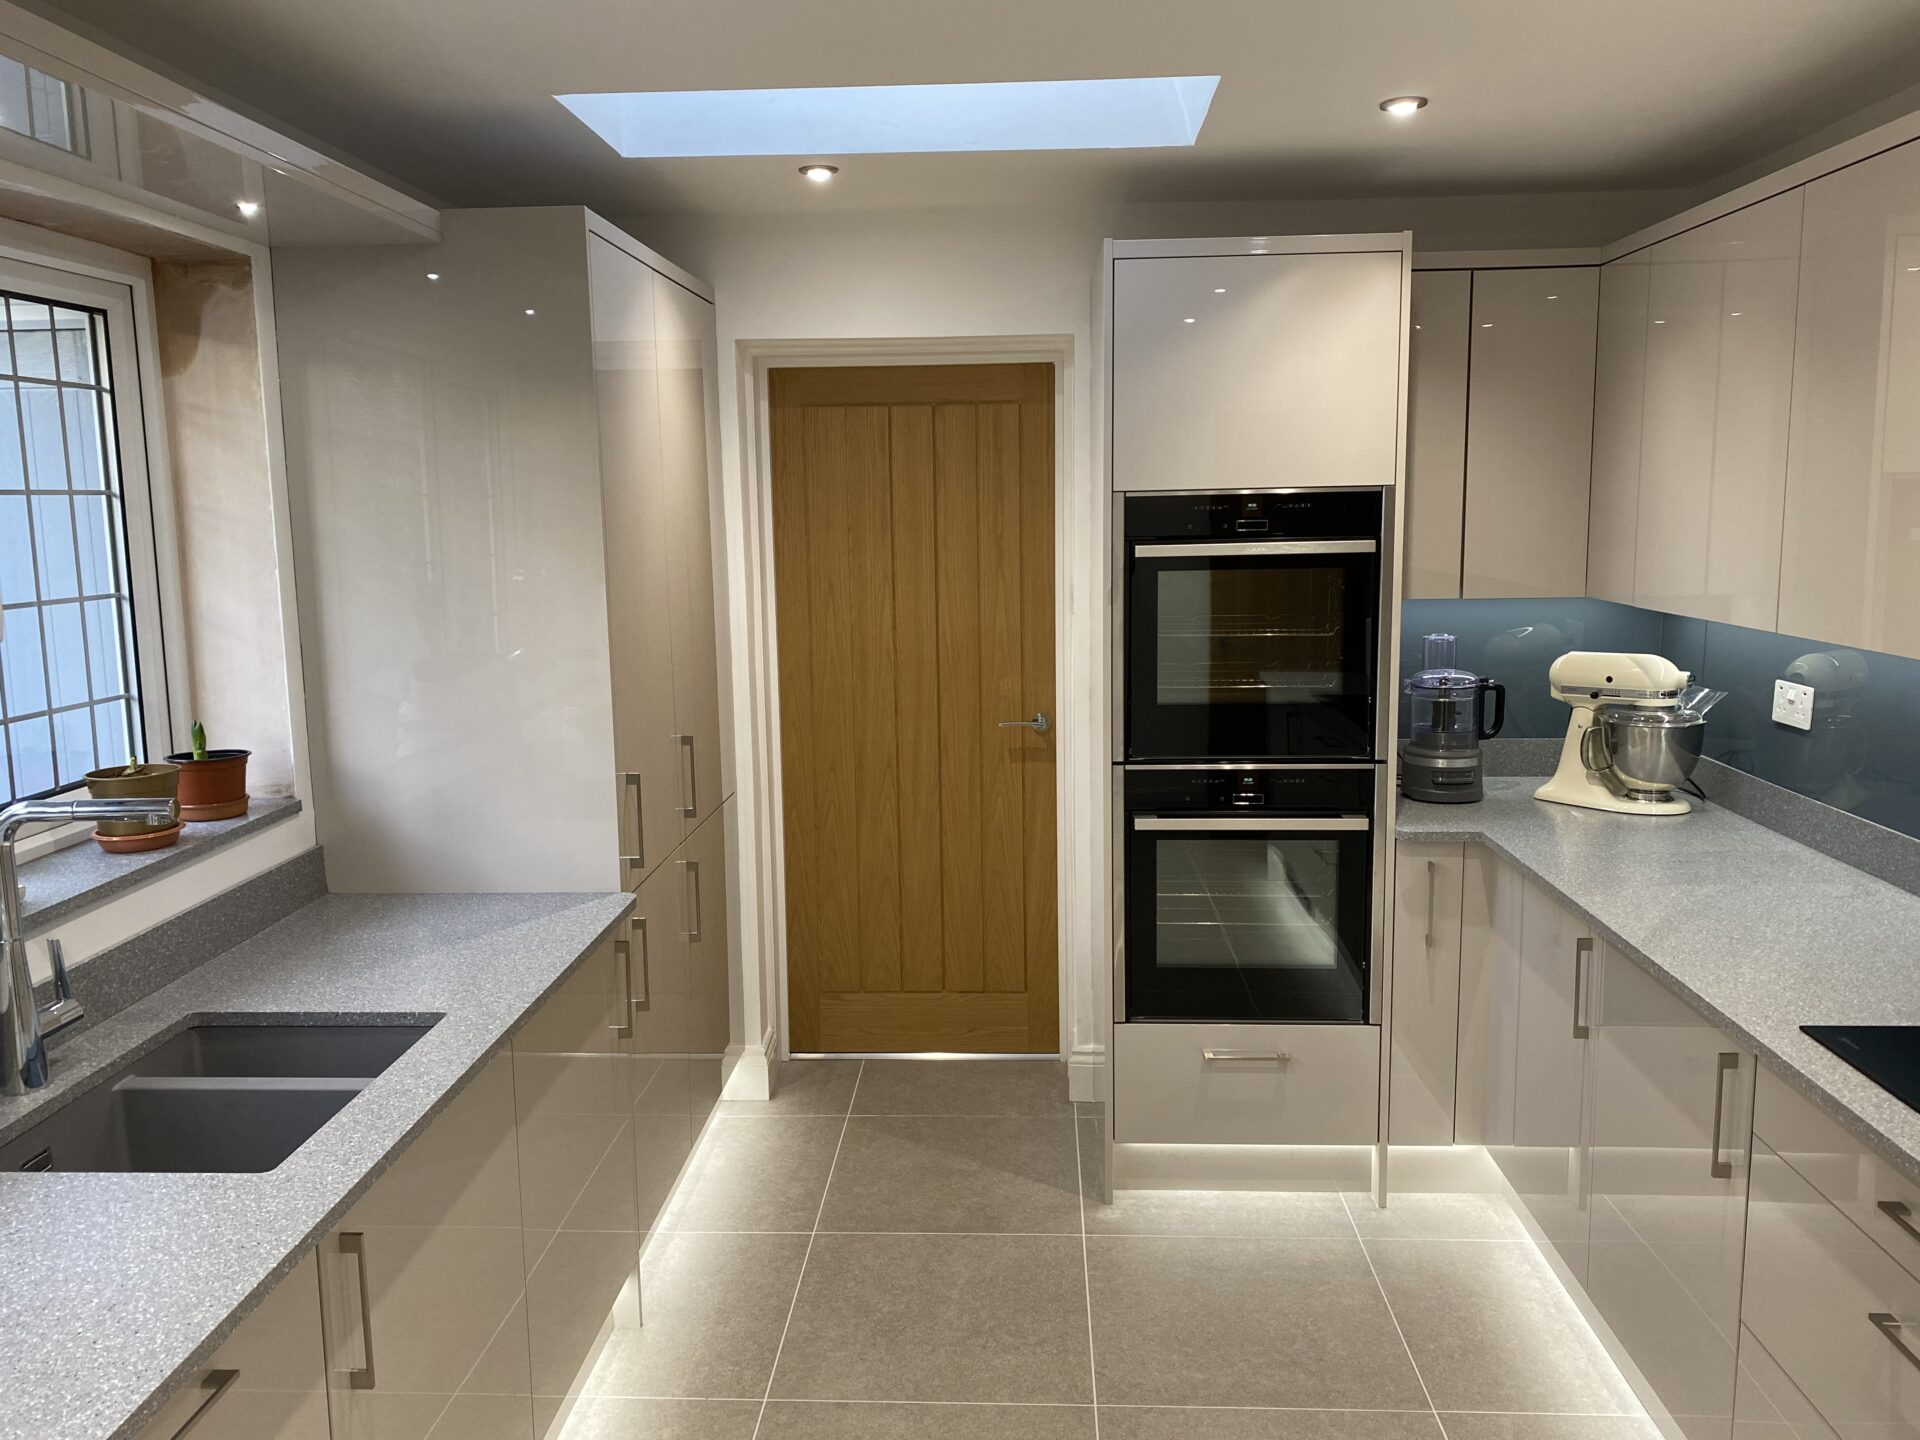 Ultra gloss cashmere kitchen with Handle less wall cabinets and solid acrylic wortops fitted in Wellington Telford